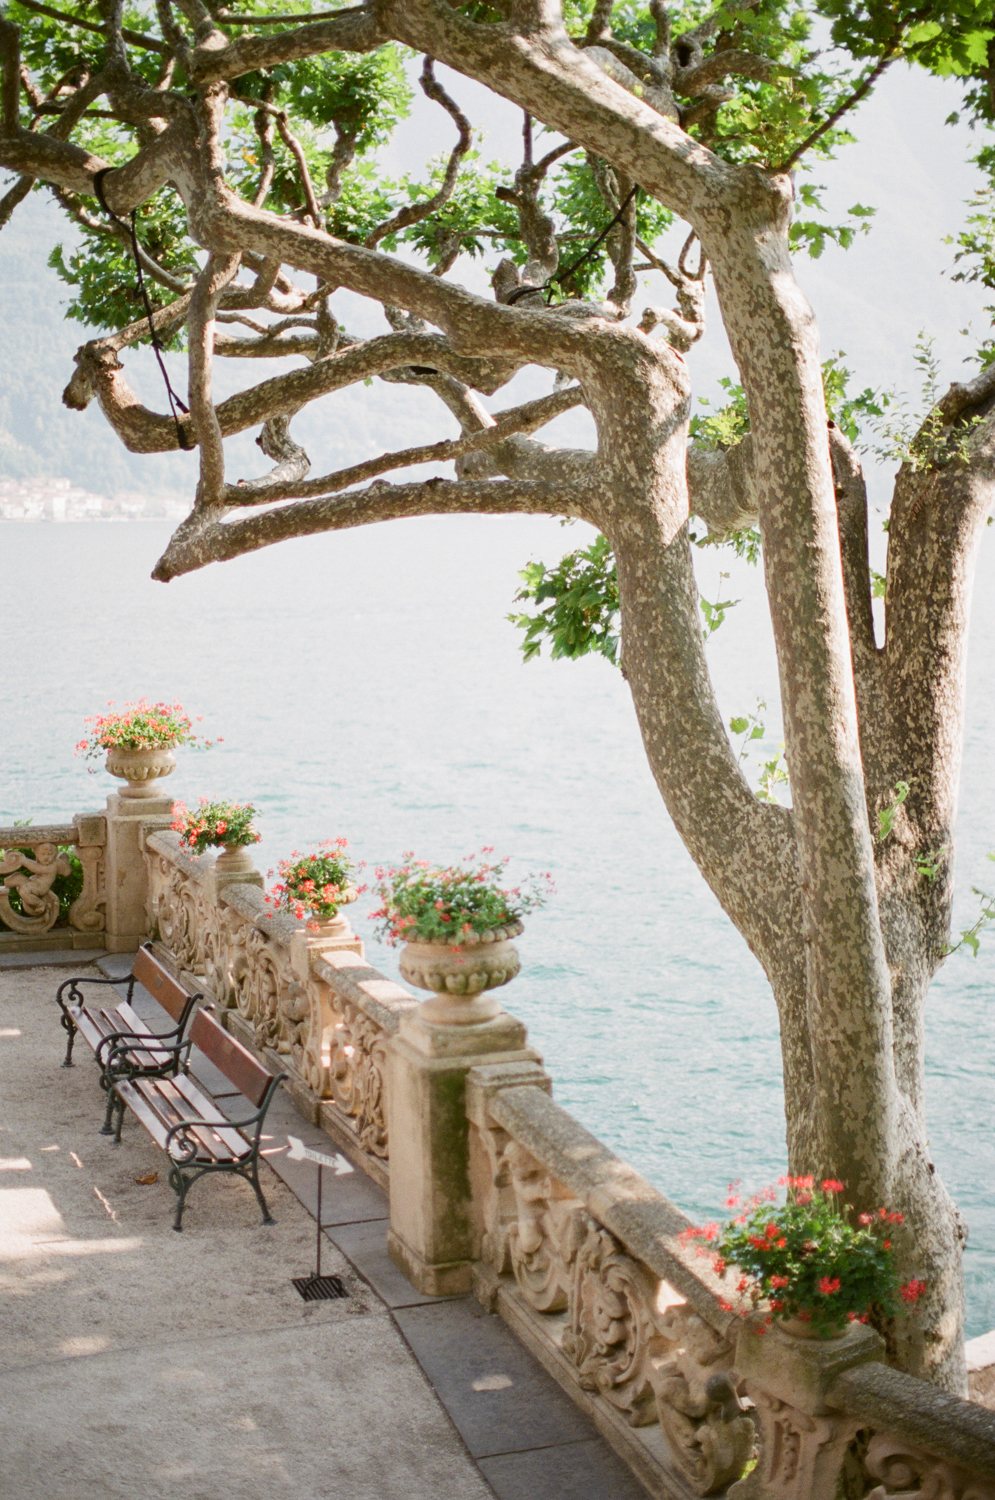 lake como villa balbaniello wedding photographer_24.JPG